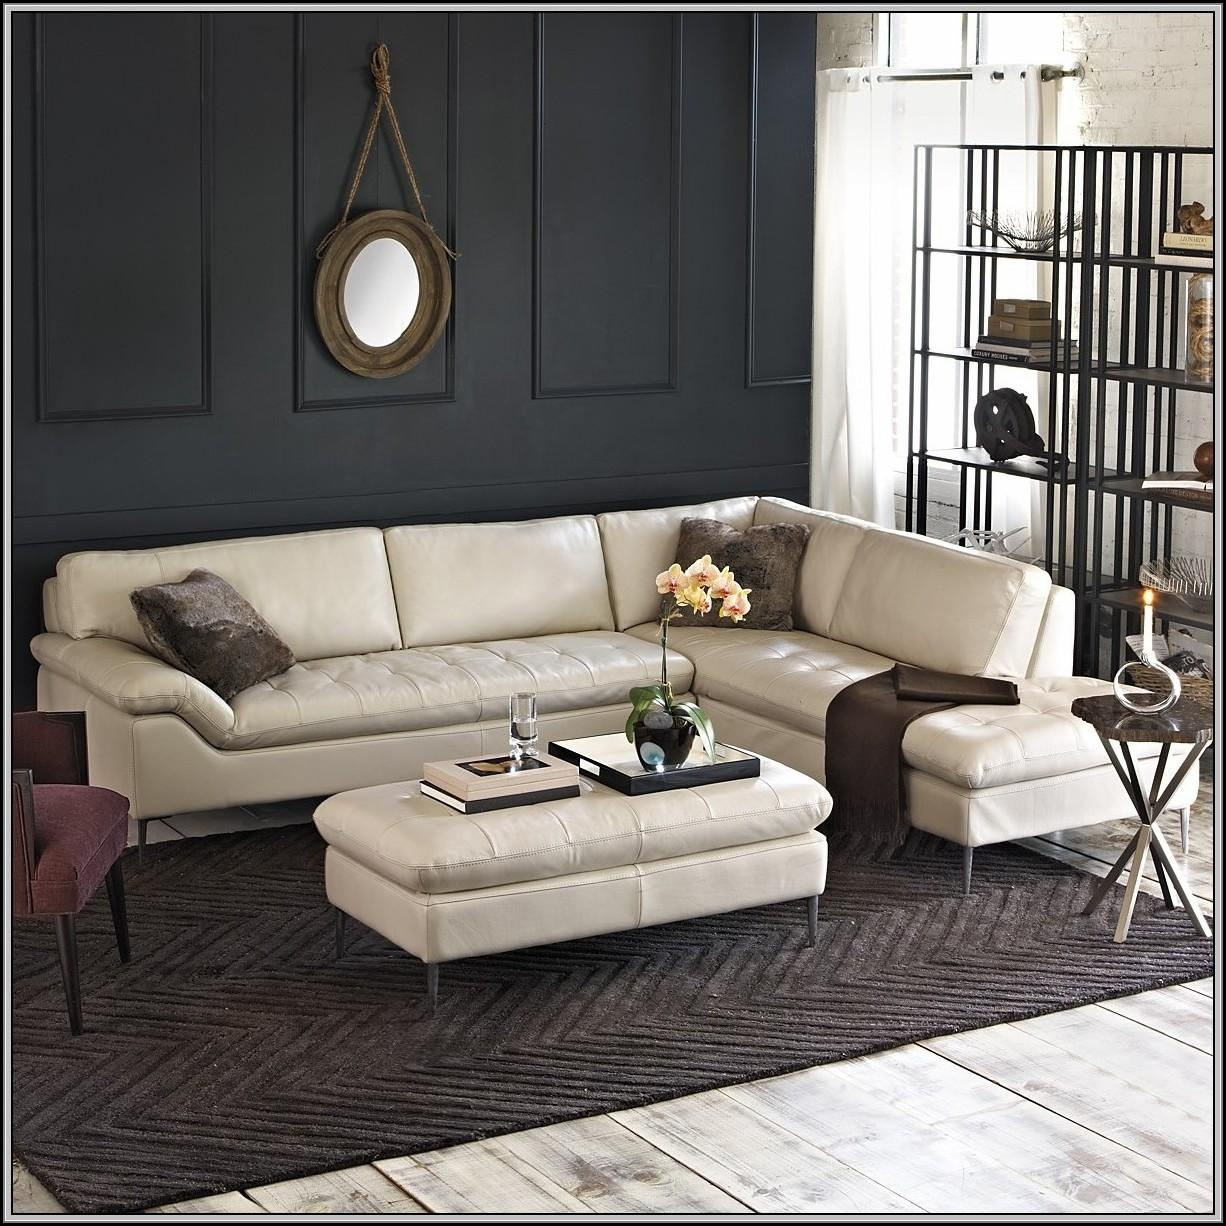 Chateau Dax Leather Sofa Bloomingdales – Sofa : Home Furniture Inside Bloomingdales Sofas (View 13 of 20)